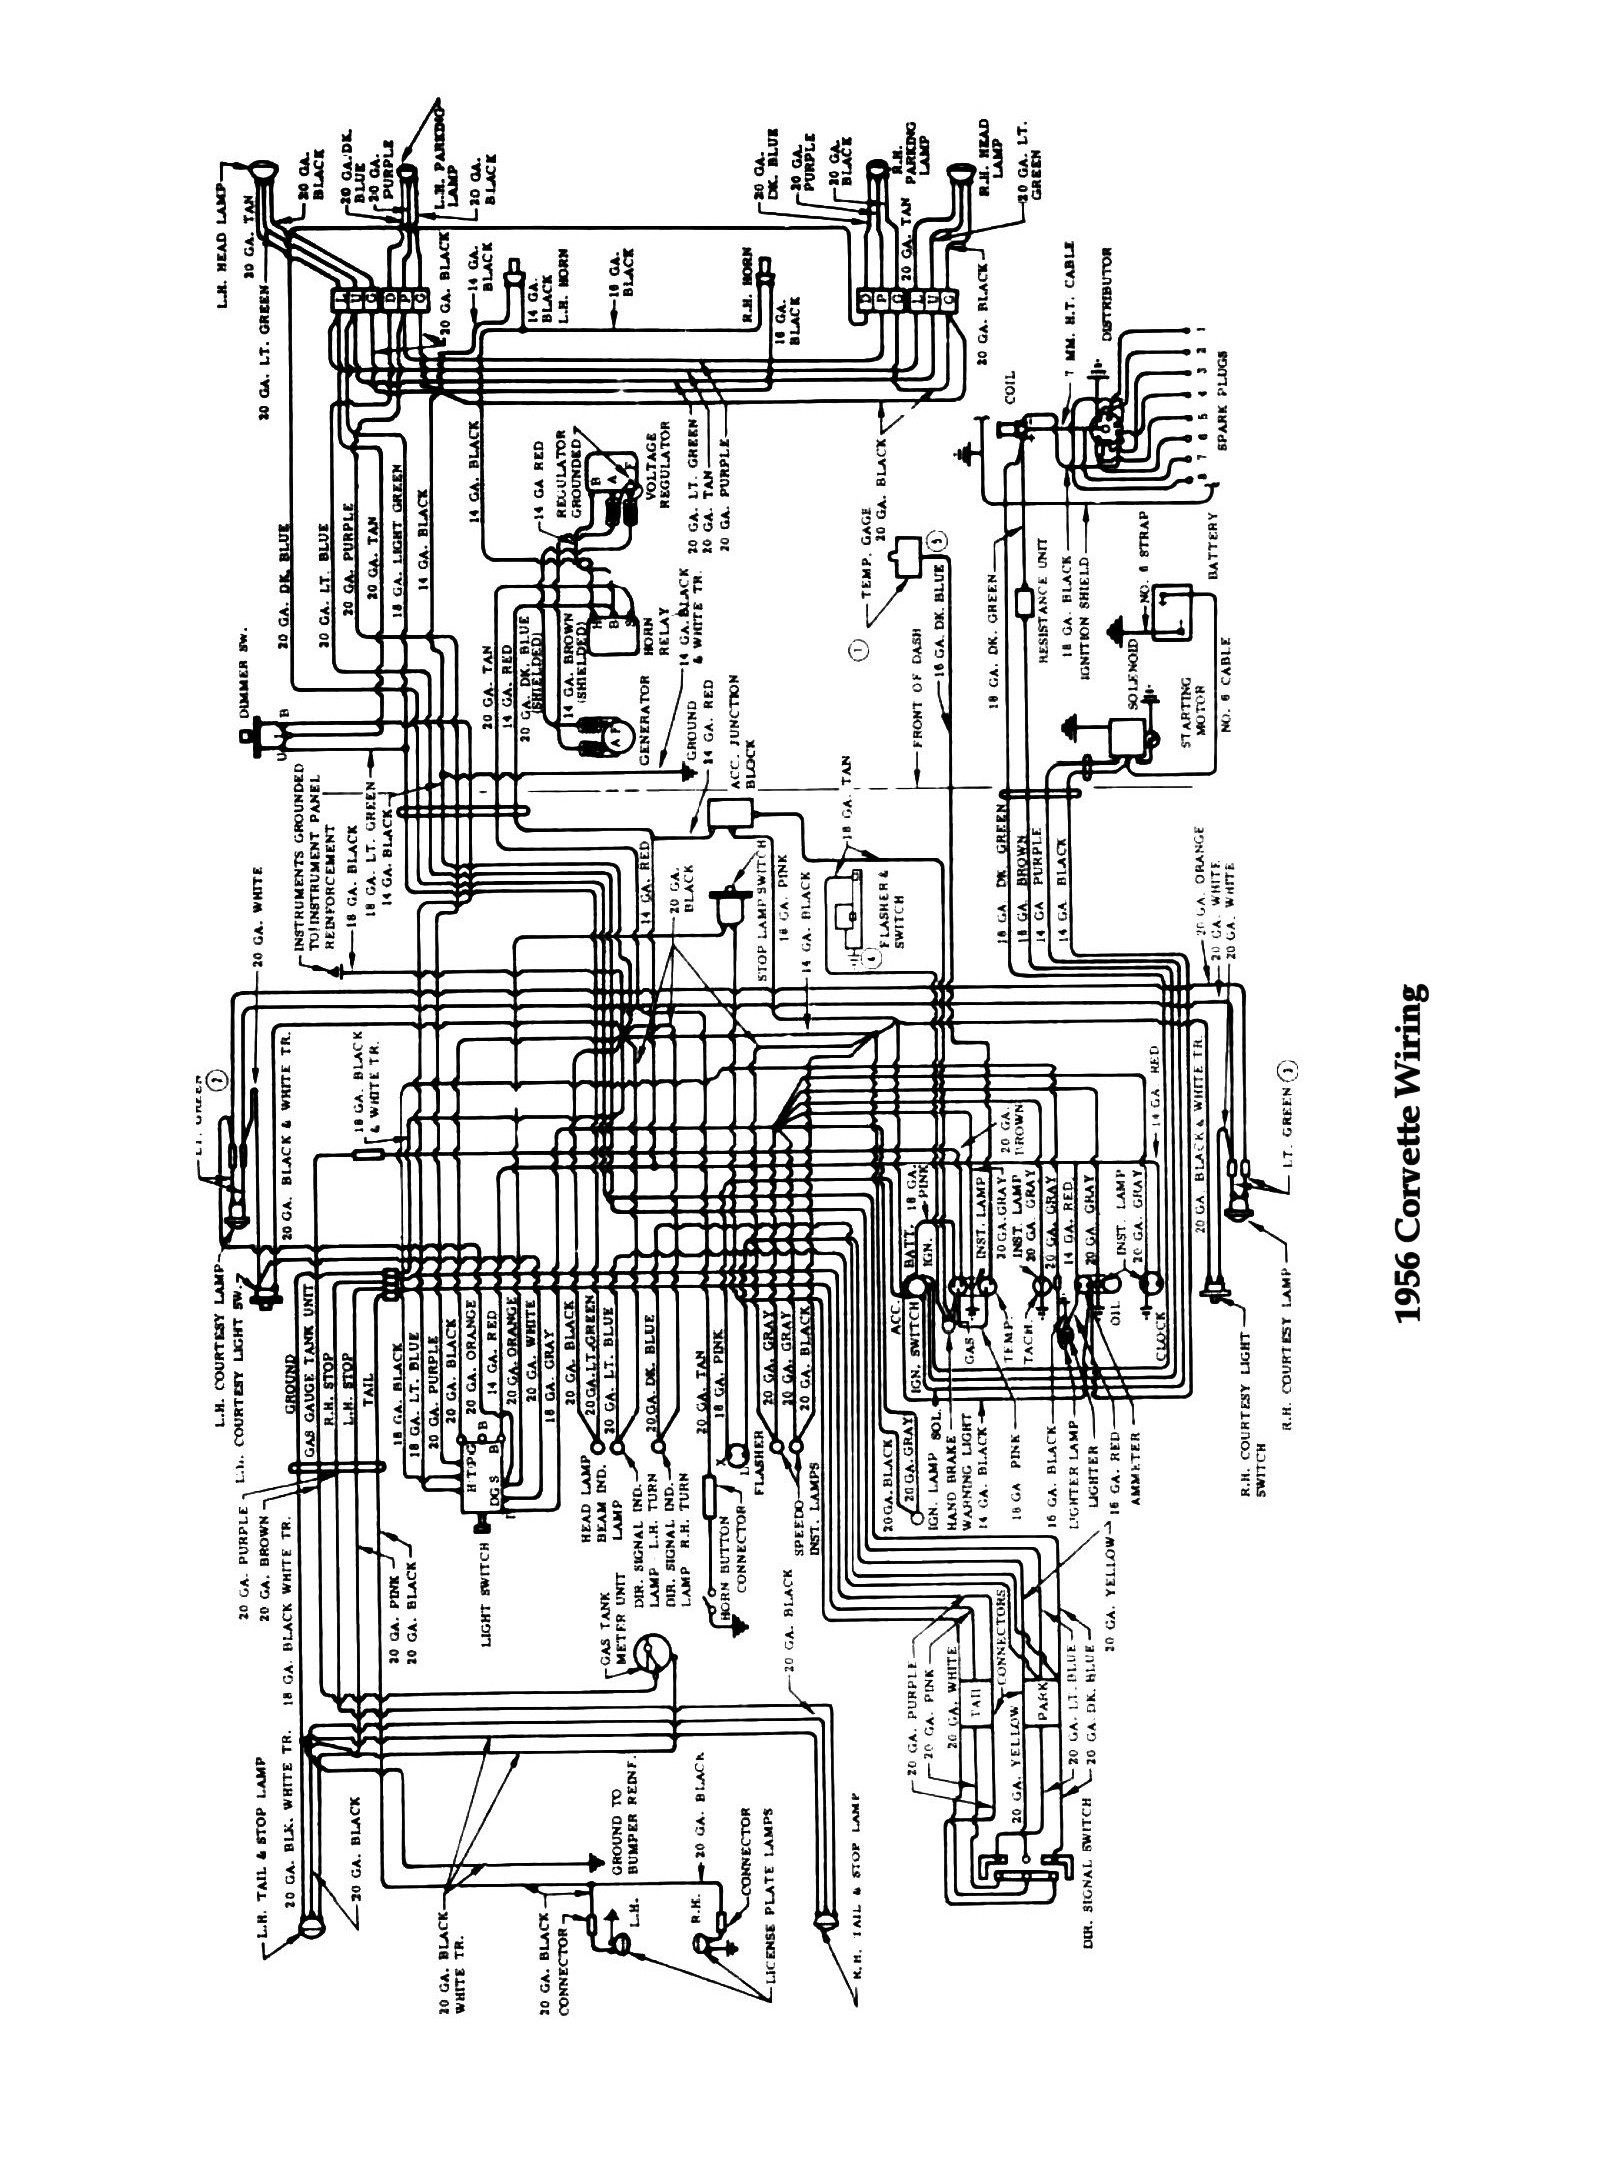 Chevy wiring diagrams Engine Schematic Car Wiring Harness 56 Chevy Engine Compartment